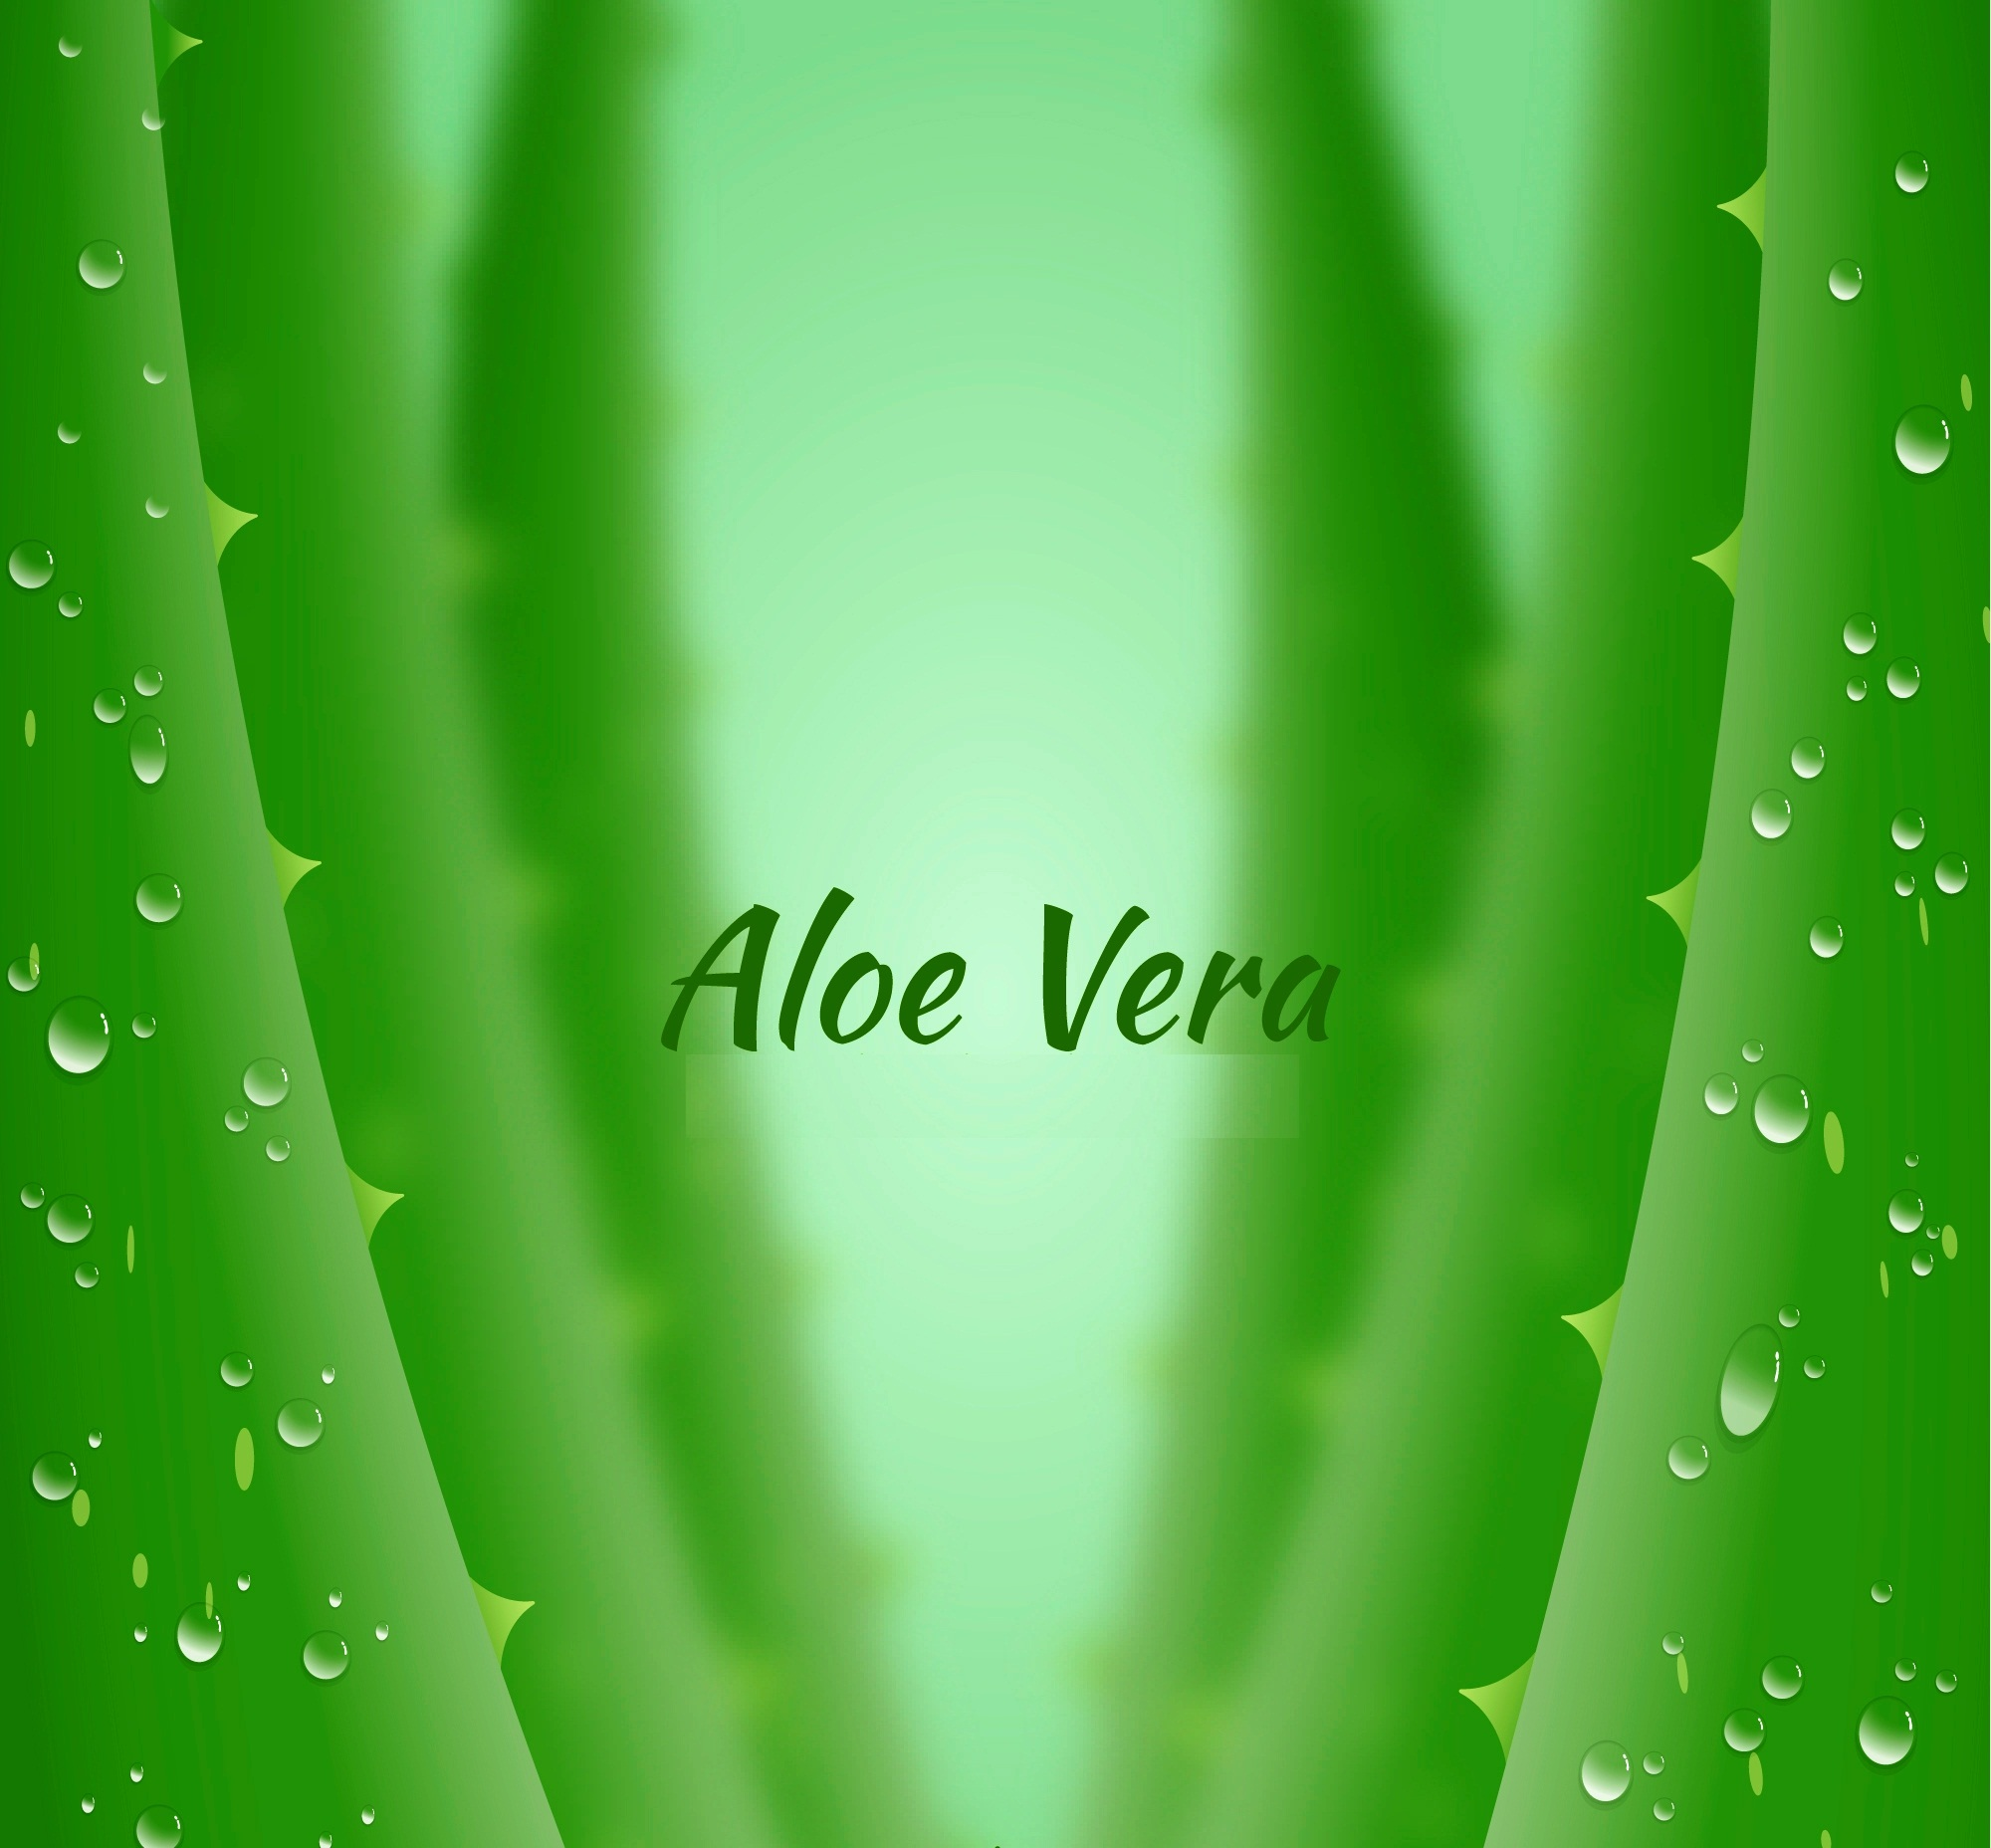 Aloe Vera Overview and its Amazing Benefits